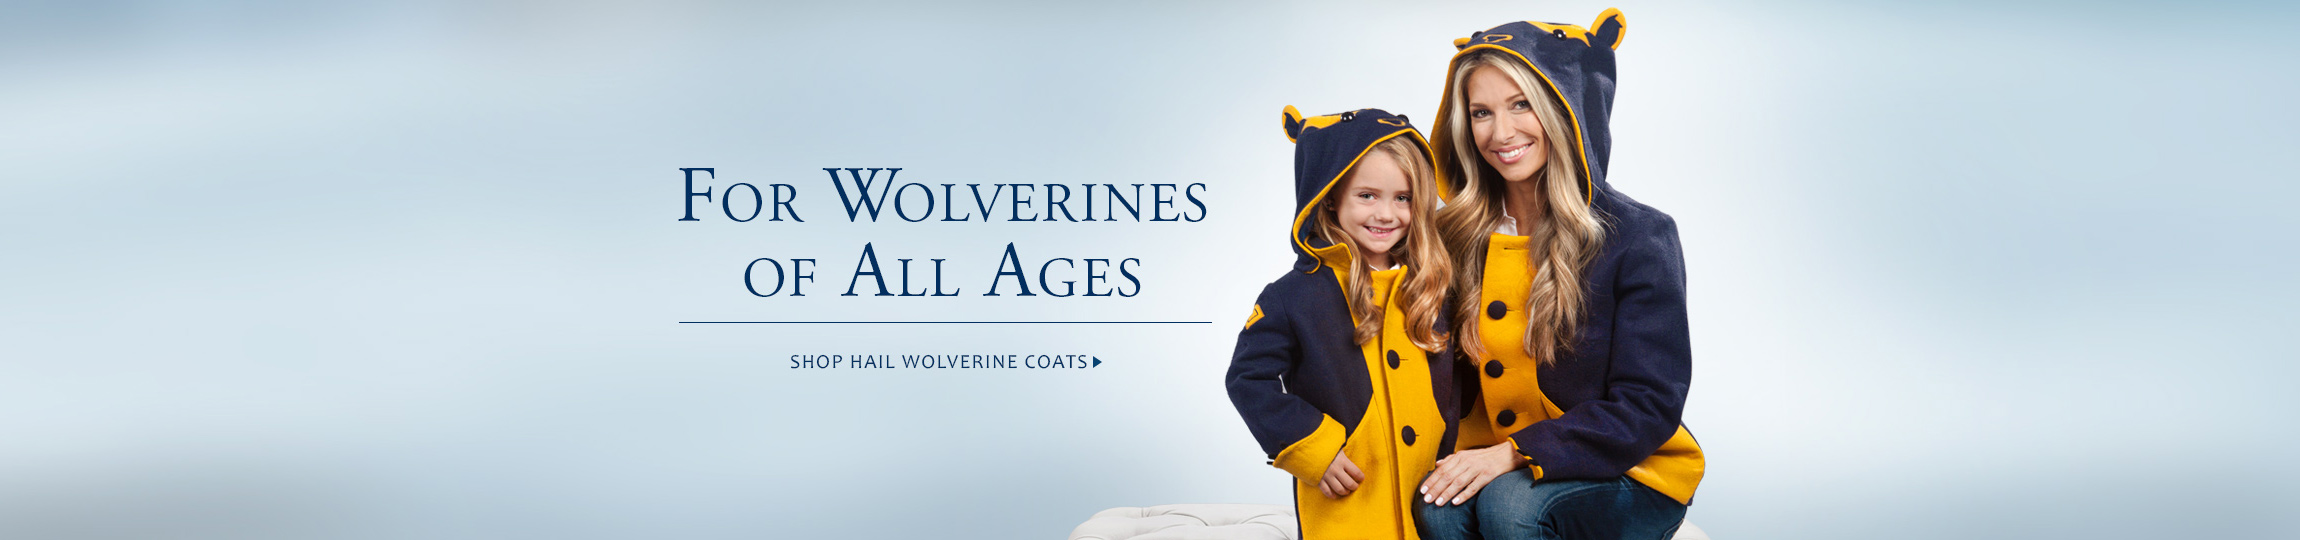 The Victors Collection Web Ad - Mother and Daughter in Matching Wolverine Coats